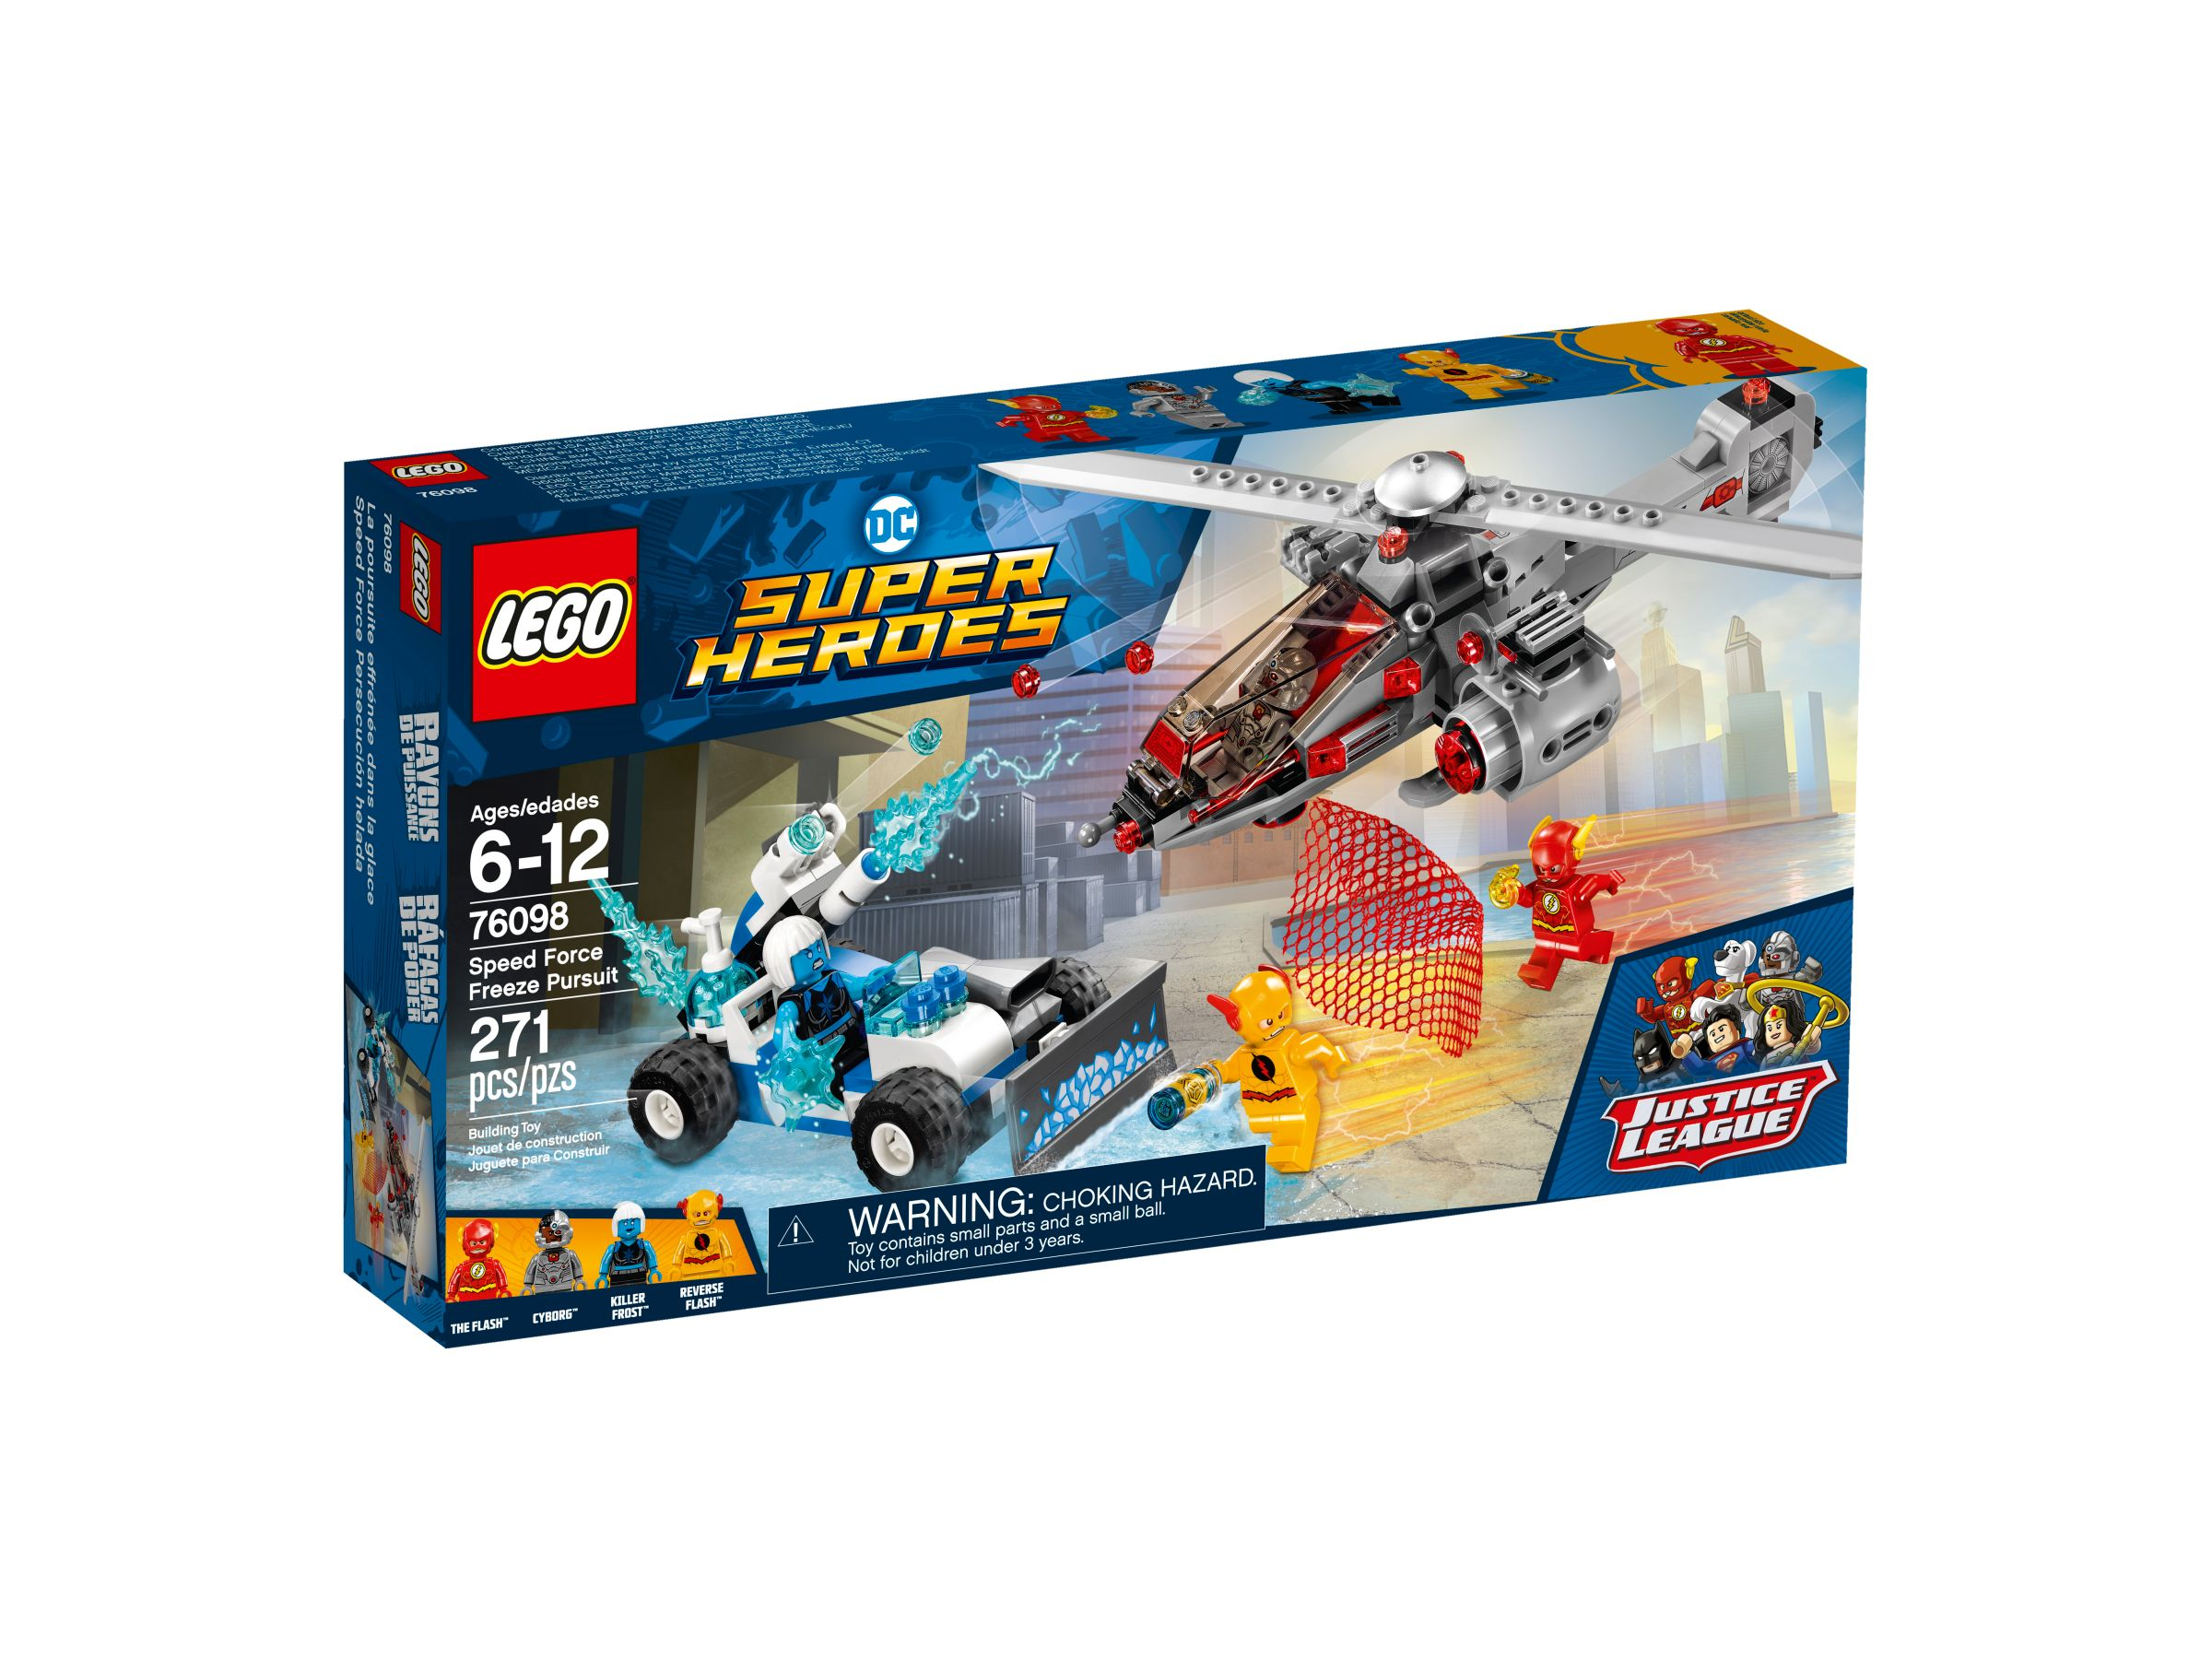 LEGO Super Heroes 76098 Speed Force Freeze Verfolgungsjagd LEGO_76098_alt1.jpg